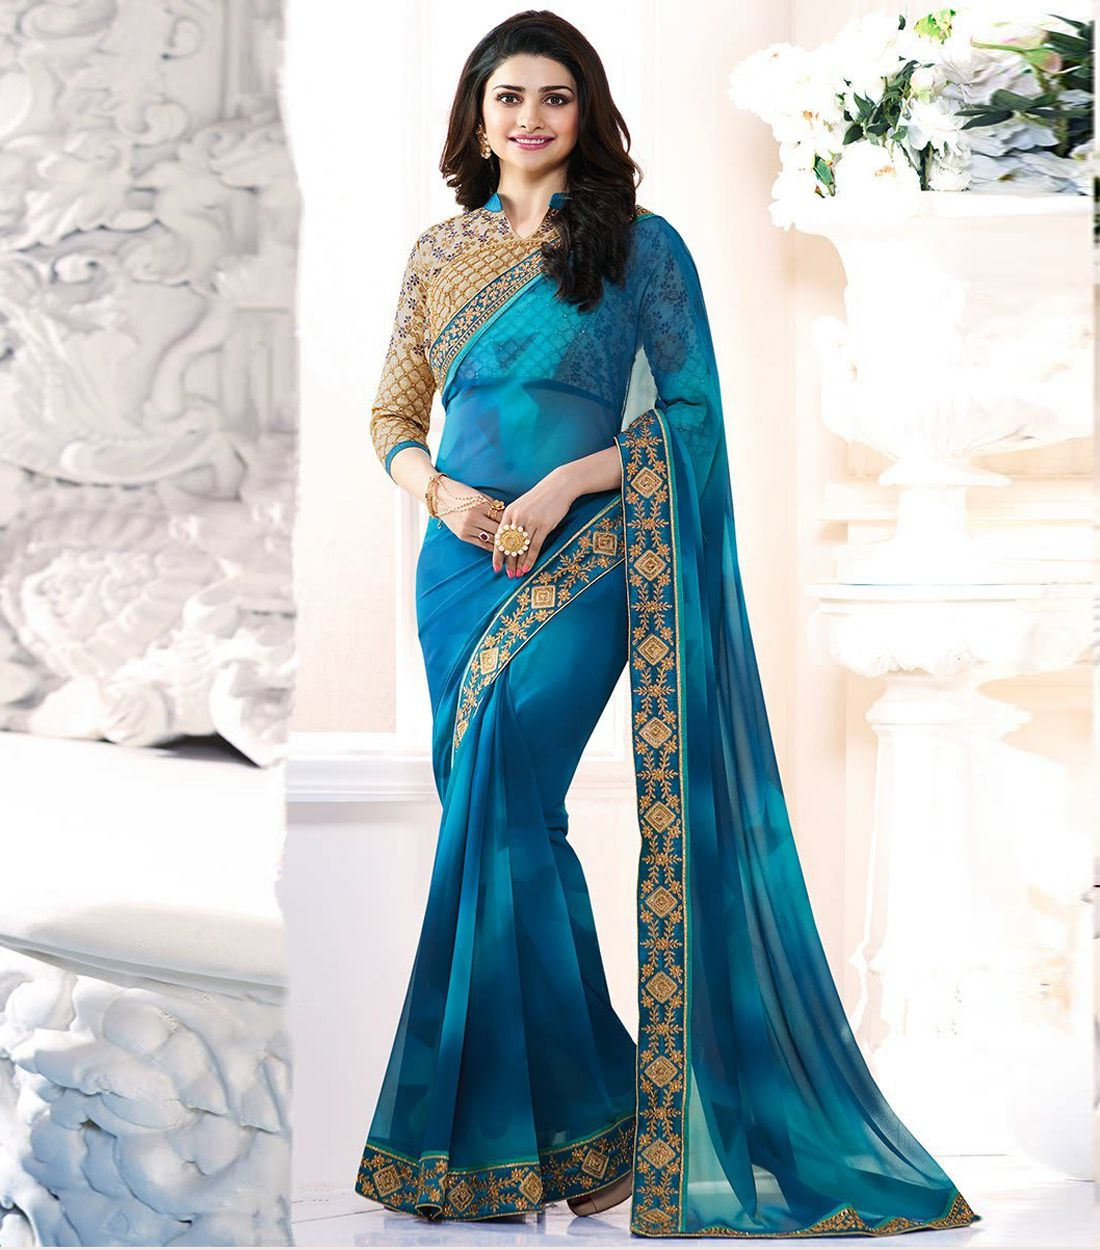 LAXMIPATI FASHION BLUE Georgette Saree